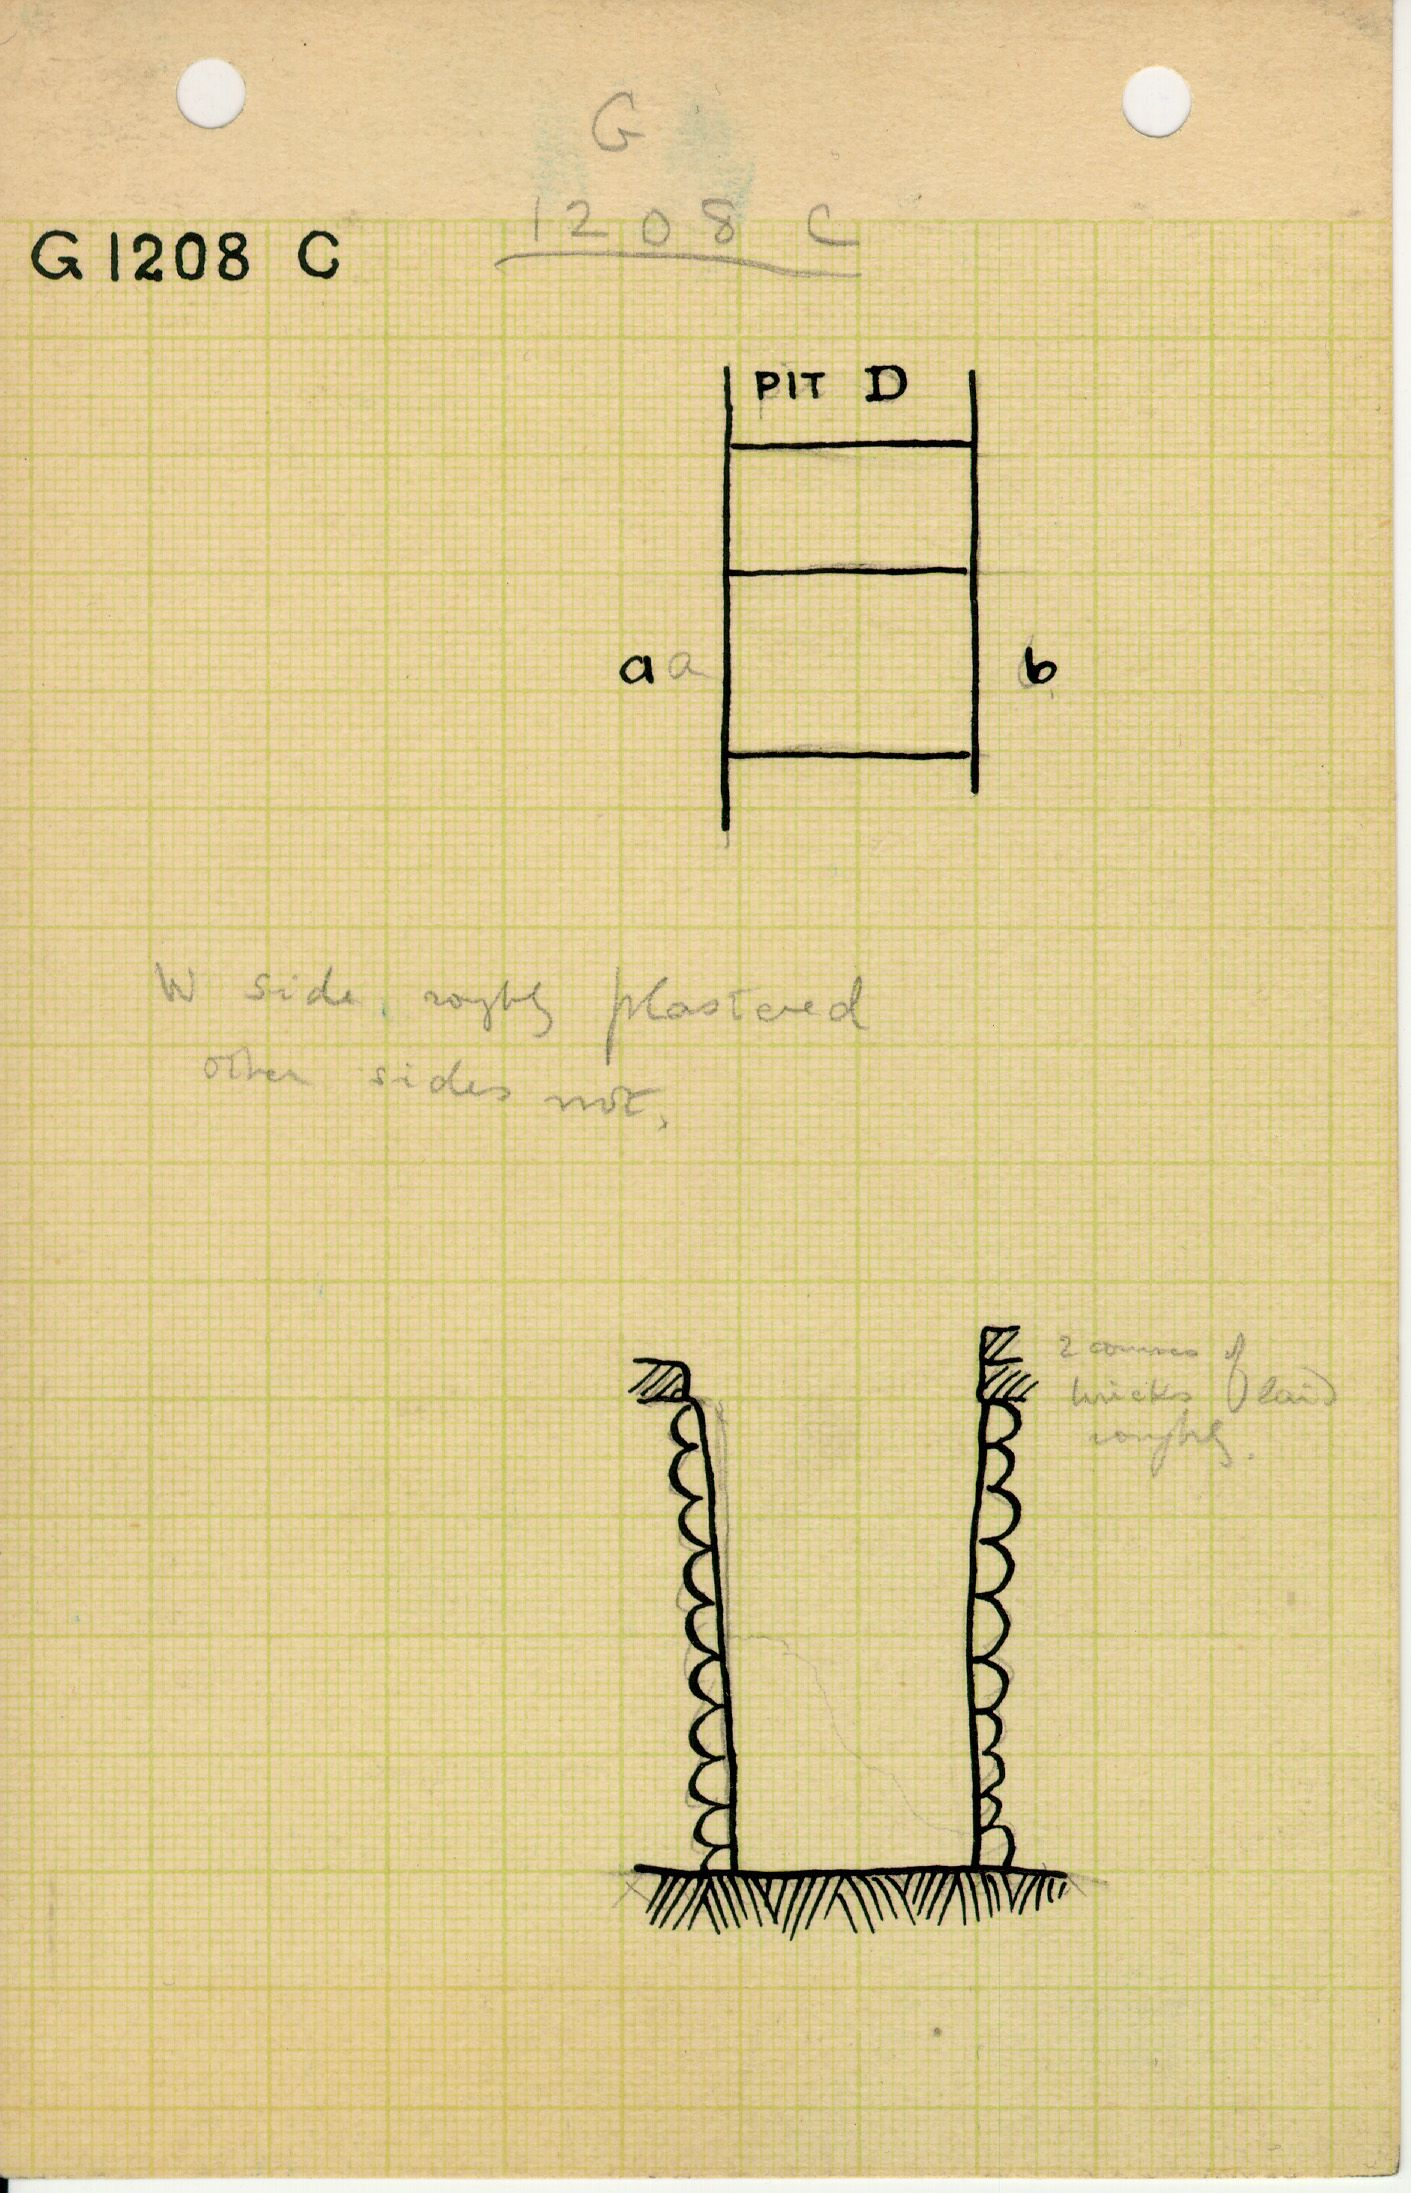 Maps and plans: G 1208, Shaft C